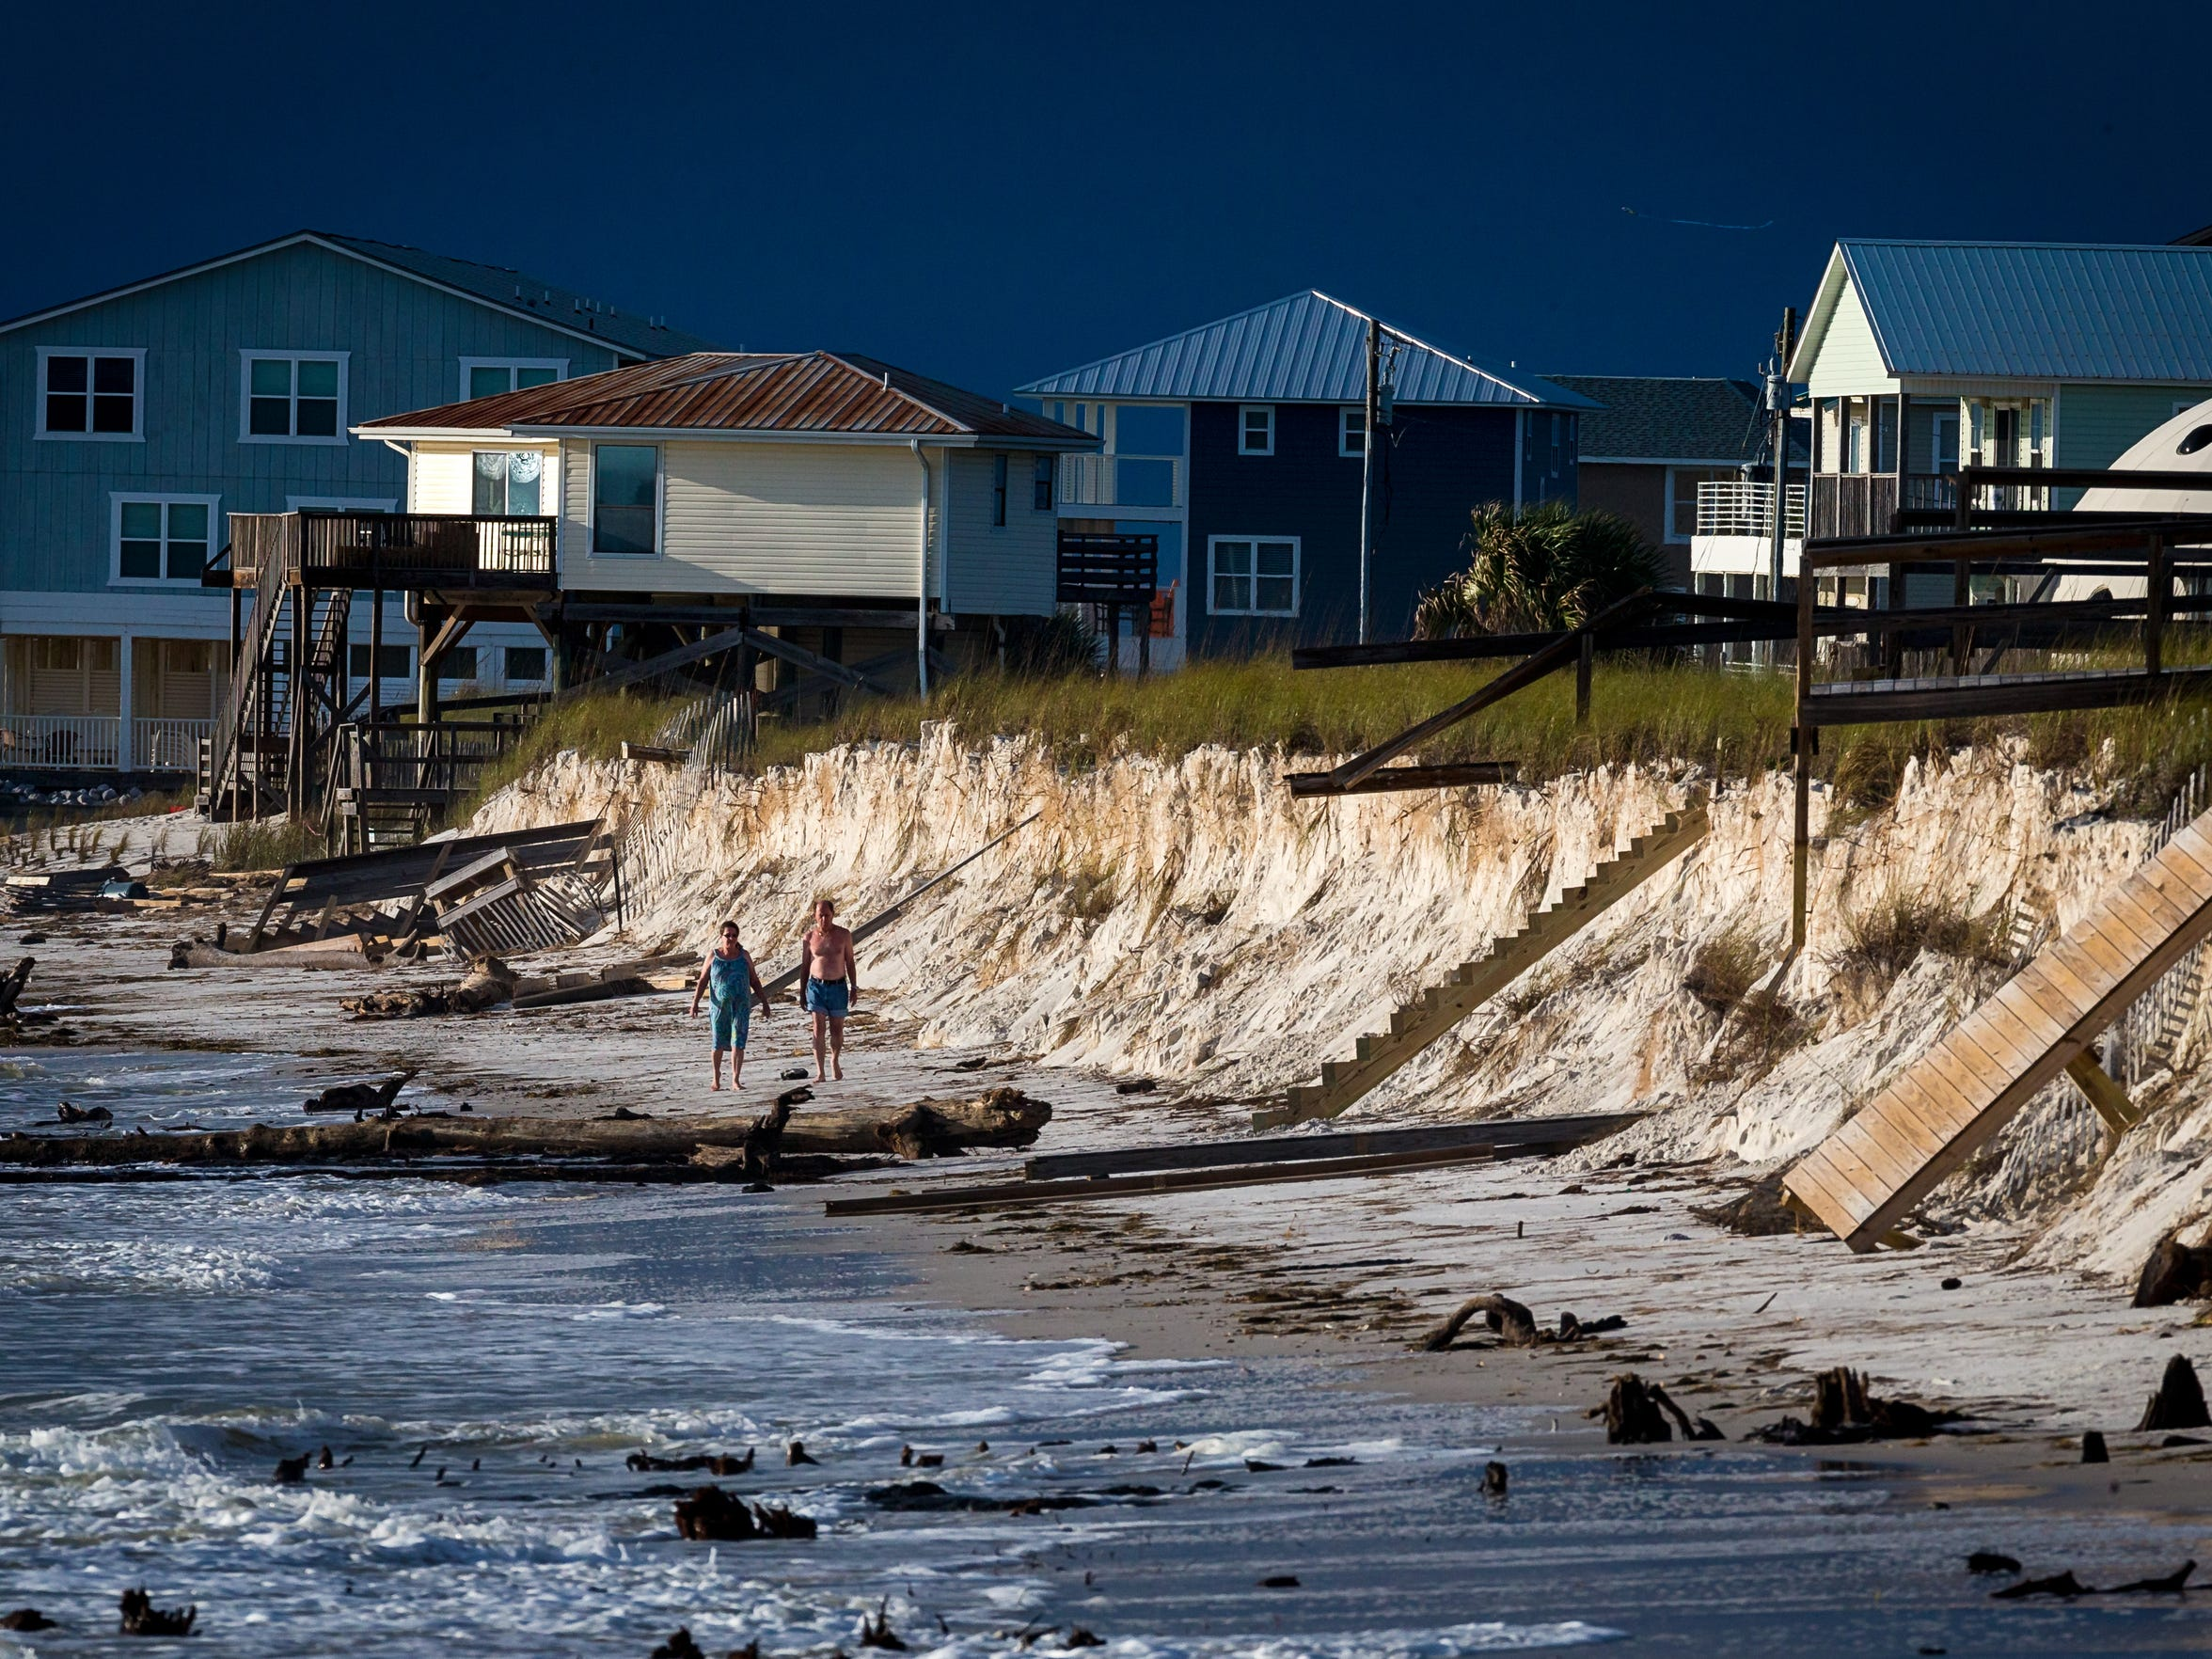 Beachgoers survey the erosion damage caused by a strong